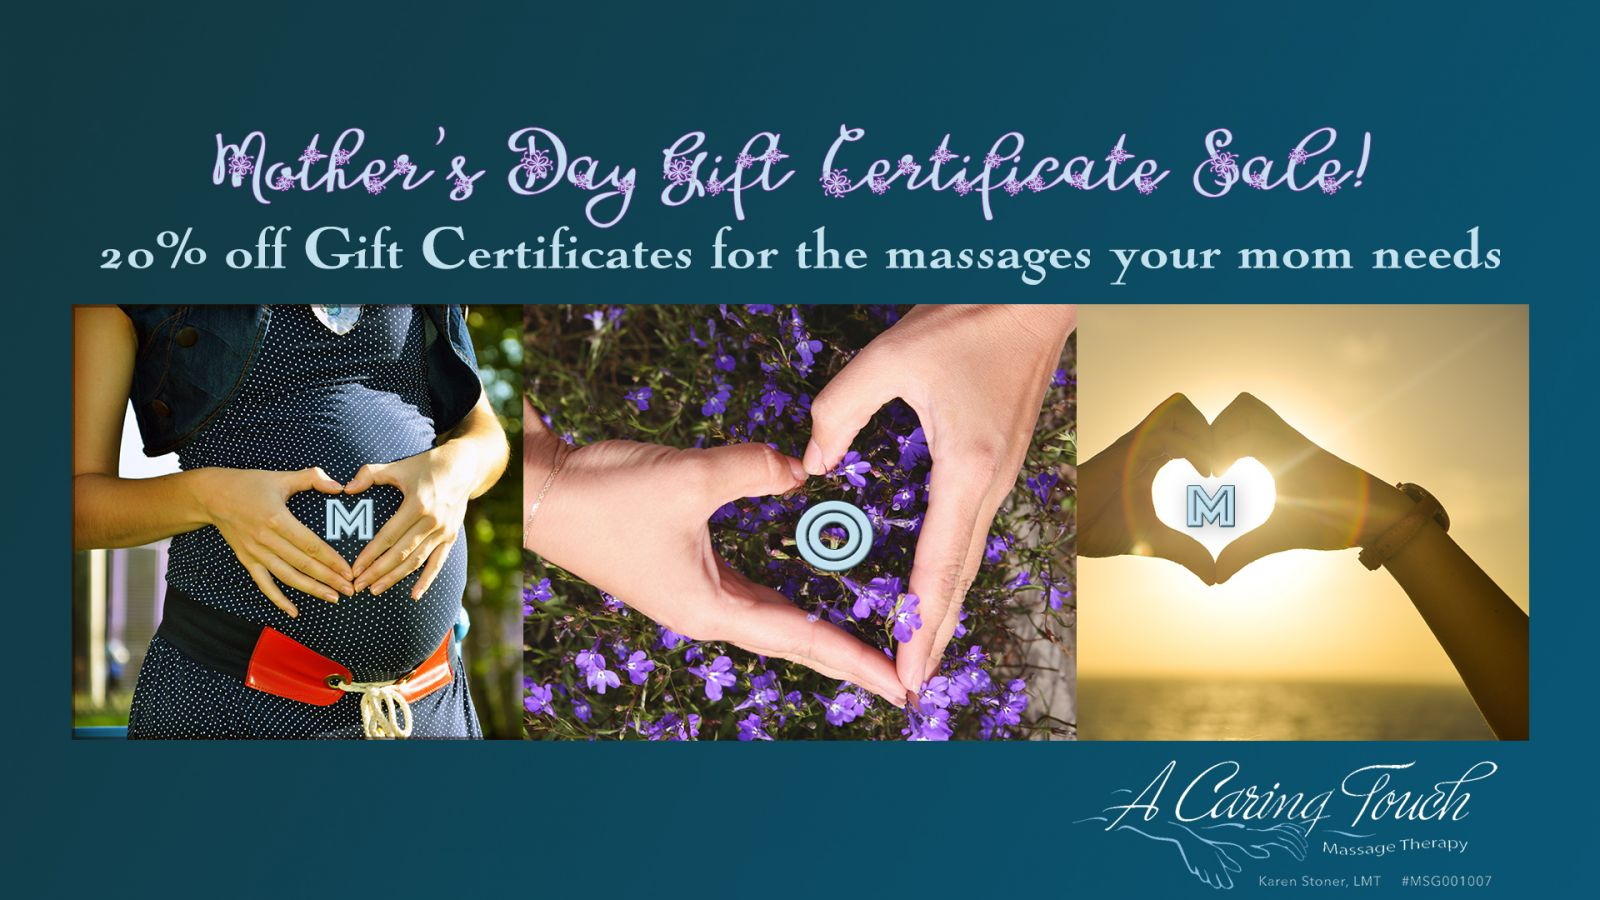 Mother's Day Gift Certificate Sale!